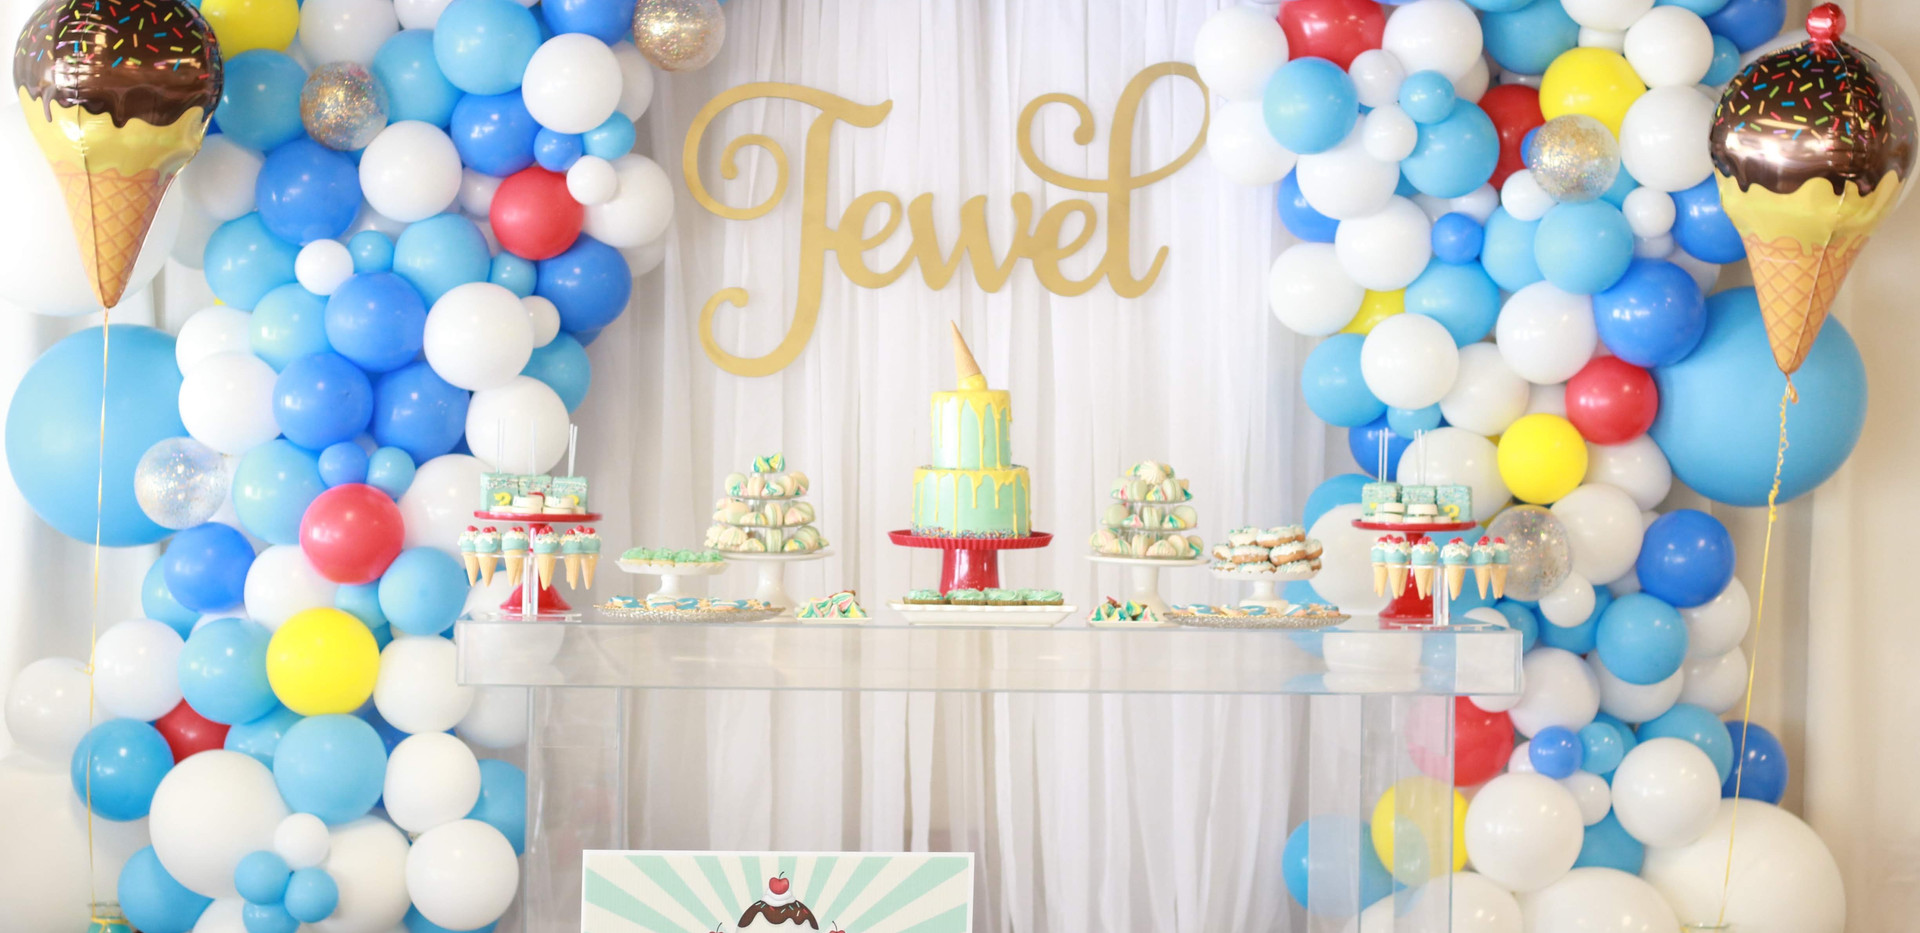 Jewel's 2nd Birthday